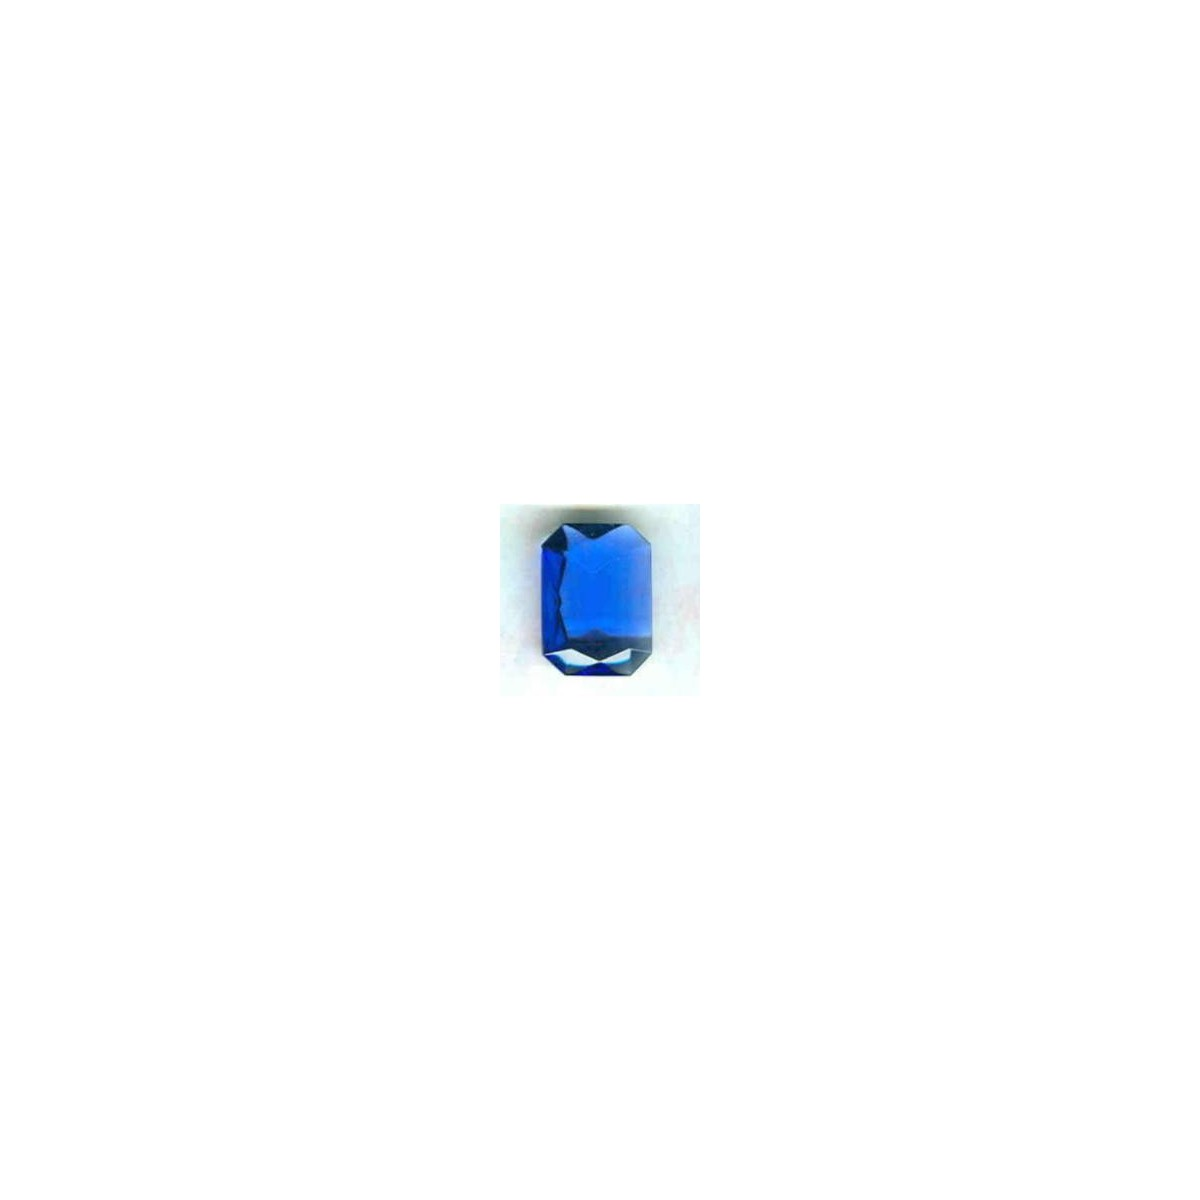 Sapphire Glass Octagon Unfoiled Jewelry Stones 12x10mm